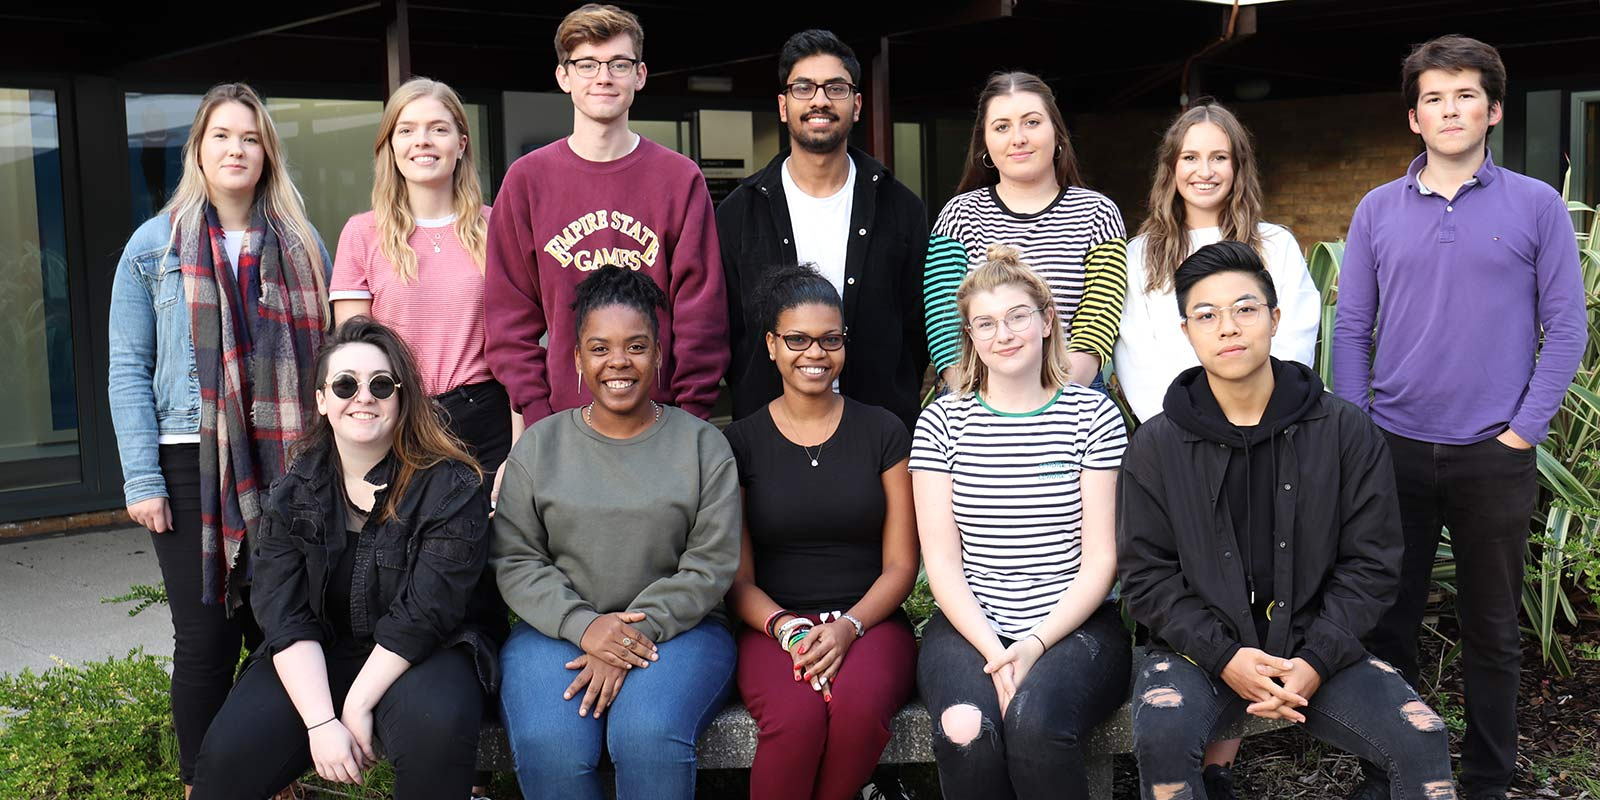 Lancaster's student digital ambassadors from 2018